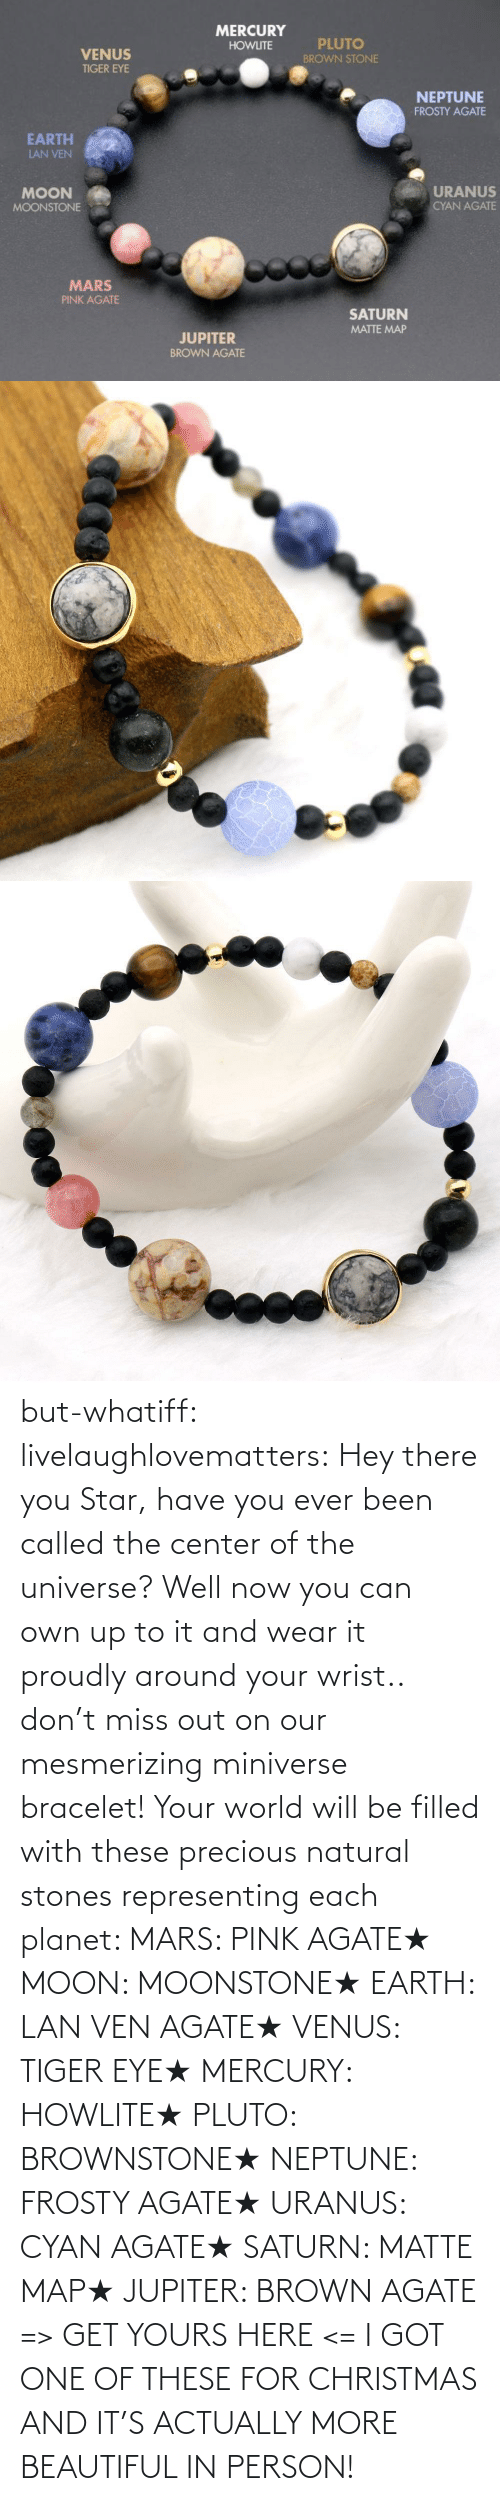 the universe: but-whatiff:  livelaughlovematters:  Hey there you Star, have you ever been called the center of the universe? Well now you can own up to it and wear it proudly around your wrist.. don't miss out on our mesmerizing miniverse bracelet! Your world will be filled with these precious natural stones representing each planet:  MARS: PINK AGATE★ MOON: MOONSTONE★ EARTH: LAN VEN AGATE★ VENUS: TIGER EYE★ MERCURY: HOWLITE★ PLUTO: BROWNSTONE★ NEPTUNE: FROSTY AGATE★ URANUS: CYAN AGATE★ SATURN: MATTE MAP★ JUPITER: BROWN AGATE => GET YOURS HERE <=  I GOT ONE OF THESE FOR CHRISTMAS AND IT'S ACTUALLY MORE BEAUTIFUL IN PERSON!